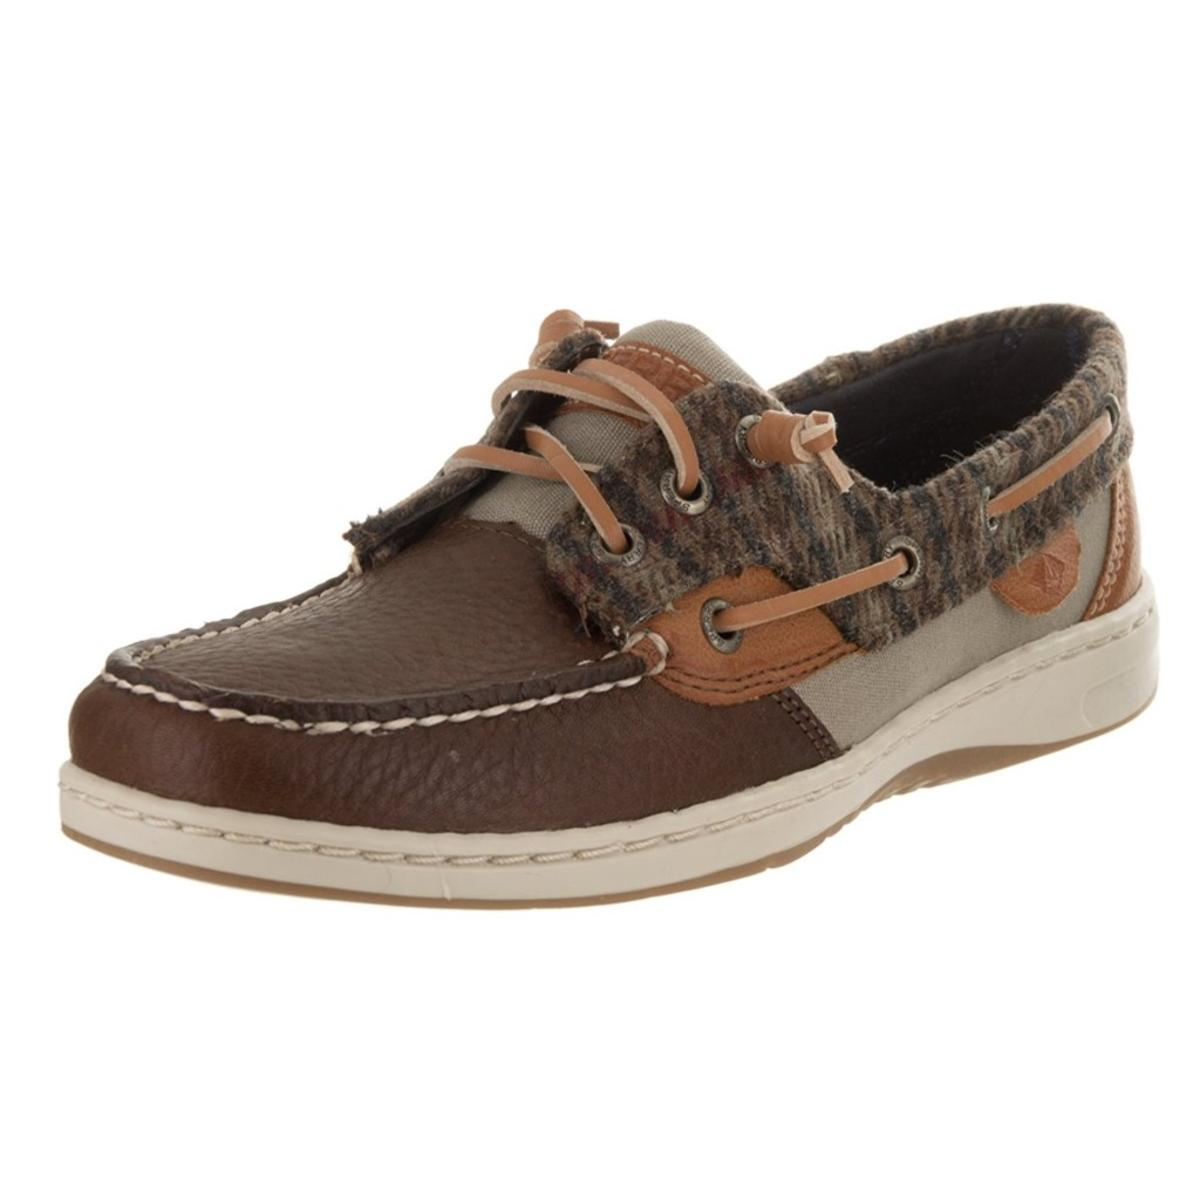 Sperry Top-Sider Rosefish Womens Walnut Boat Shoes